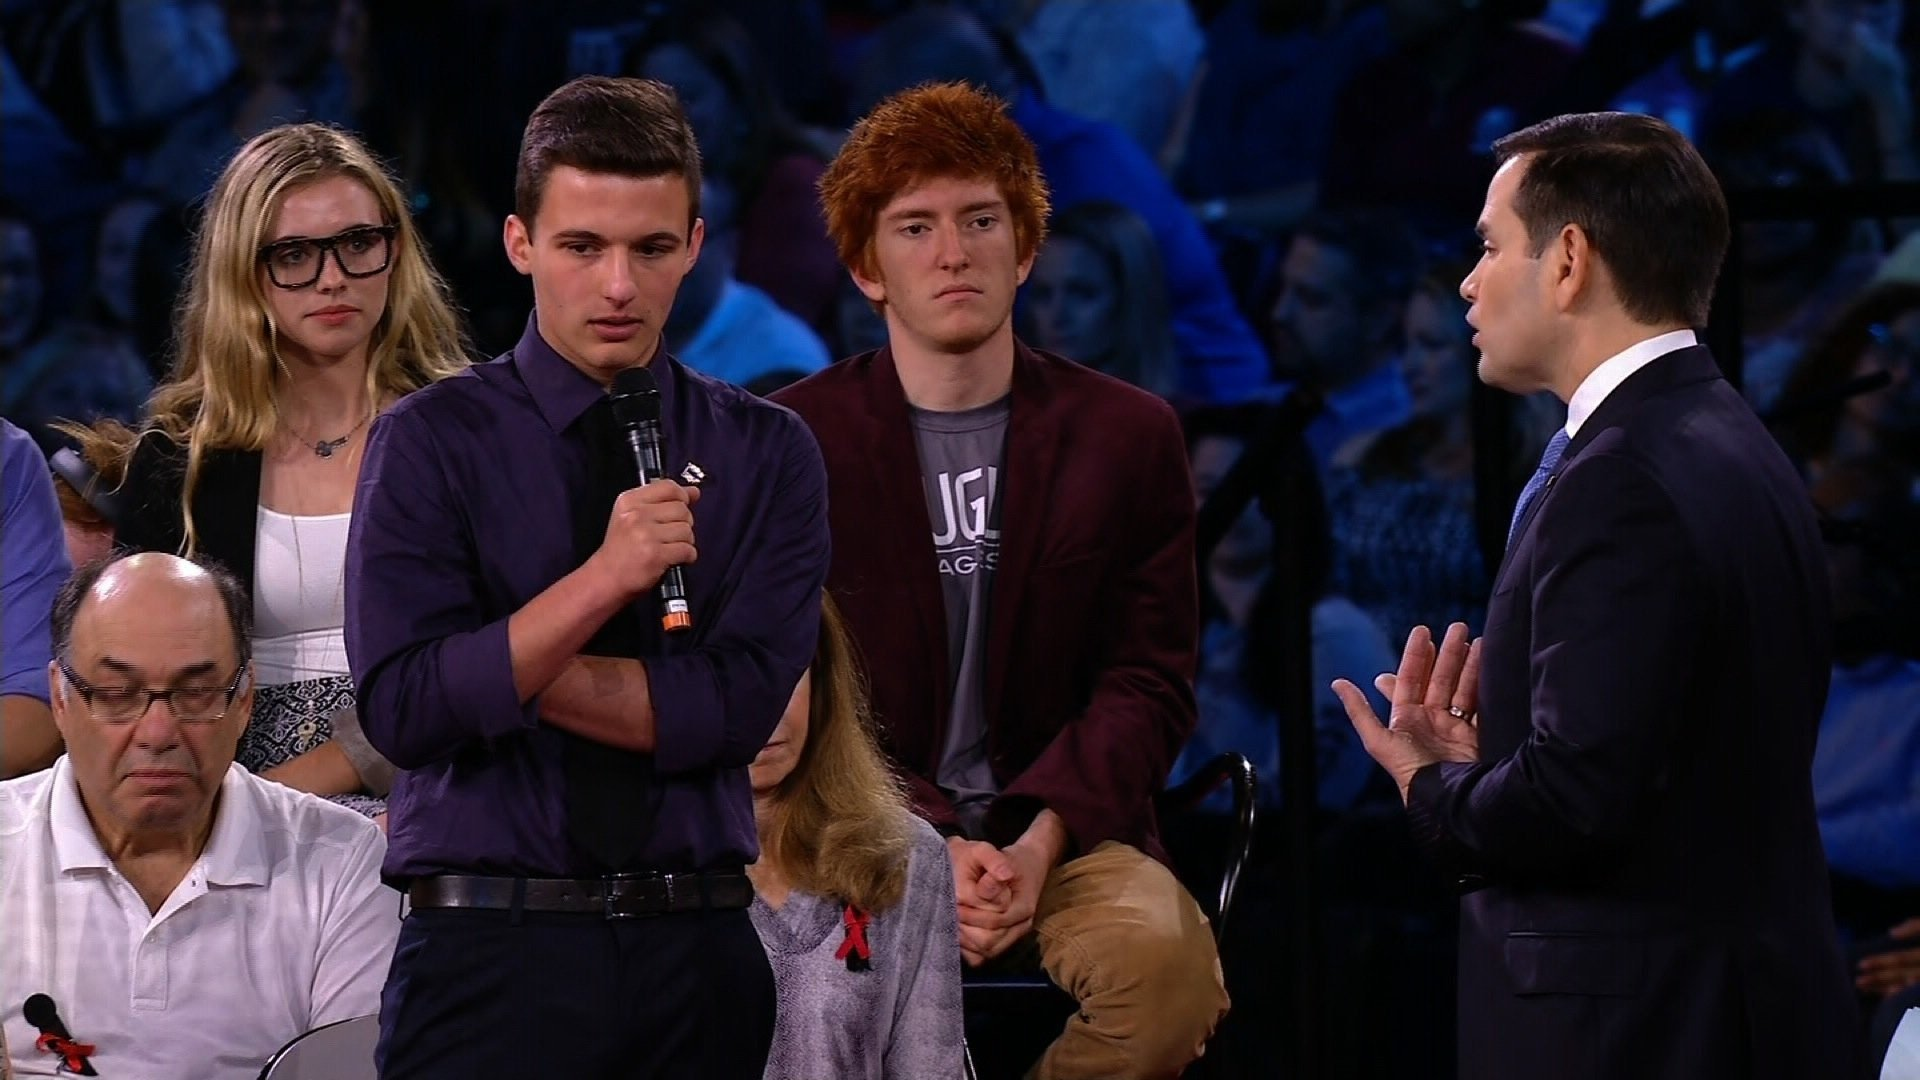 CNN Town Hall on Gun Policy: The Five Most Talked-About Moments